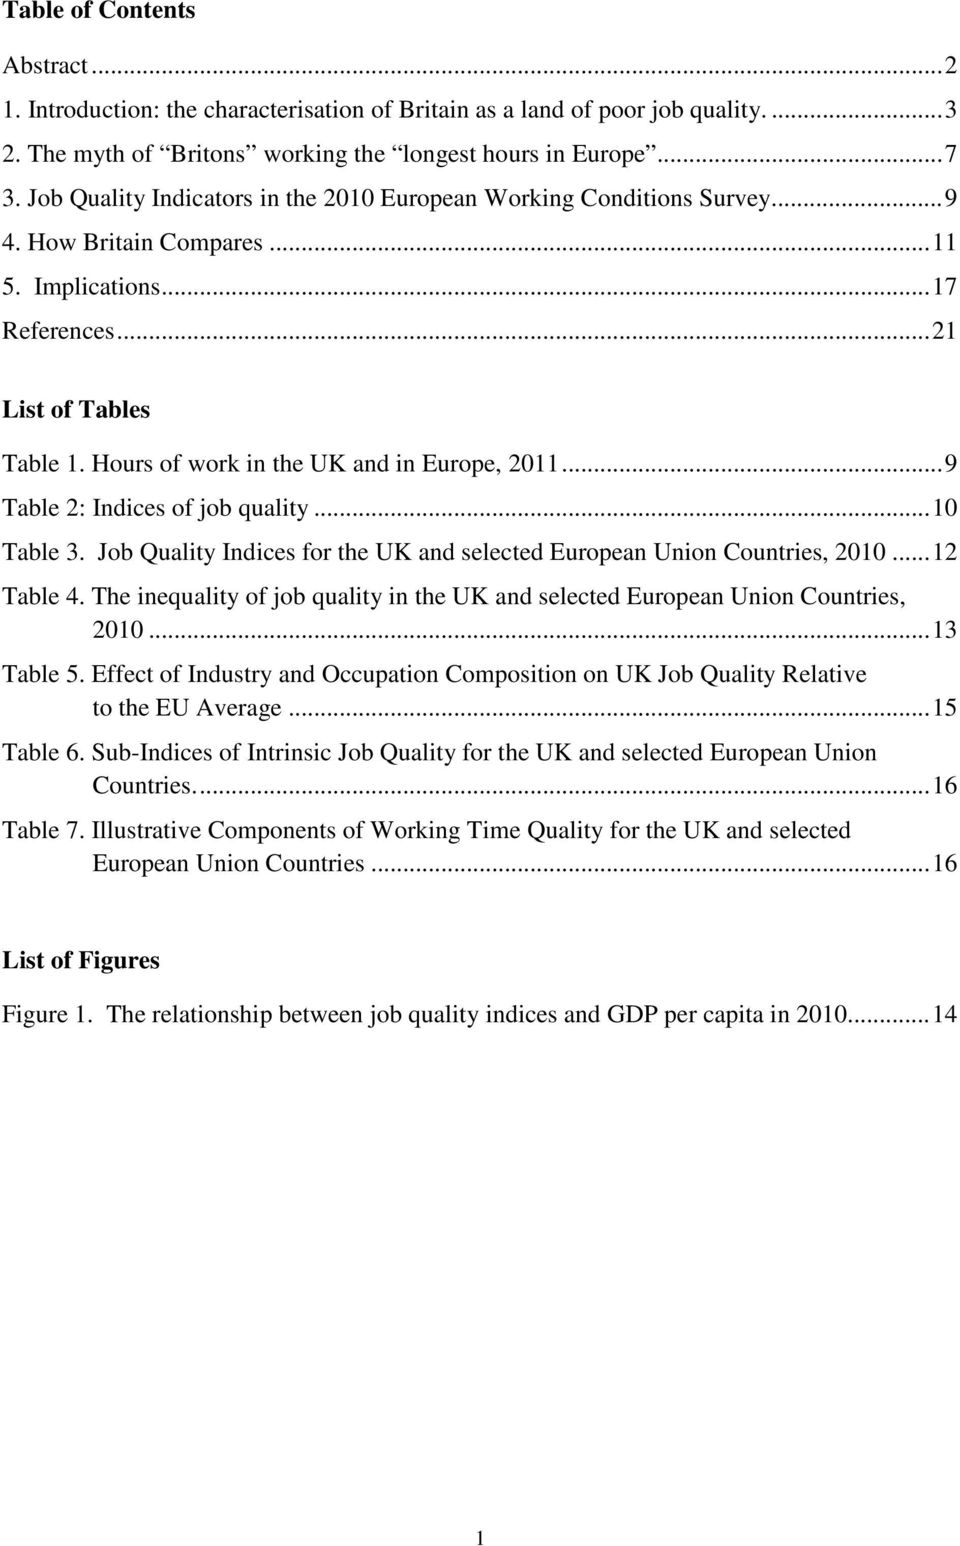 Hours of work in the UK and in Europe, 2011... 9 Table 2: Indices of job quality... 10 Table 3. Job Quality Indices for the UK and selected European Union Countries, 2010... 12 Table 4.